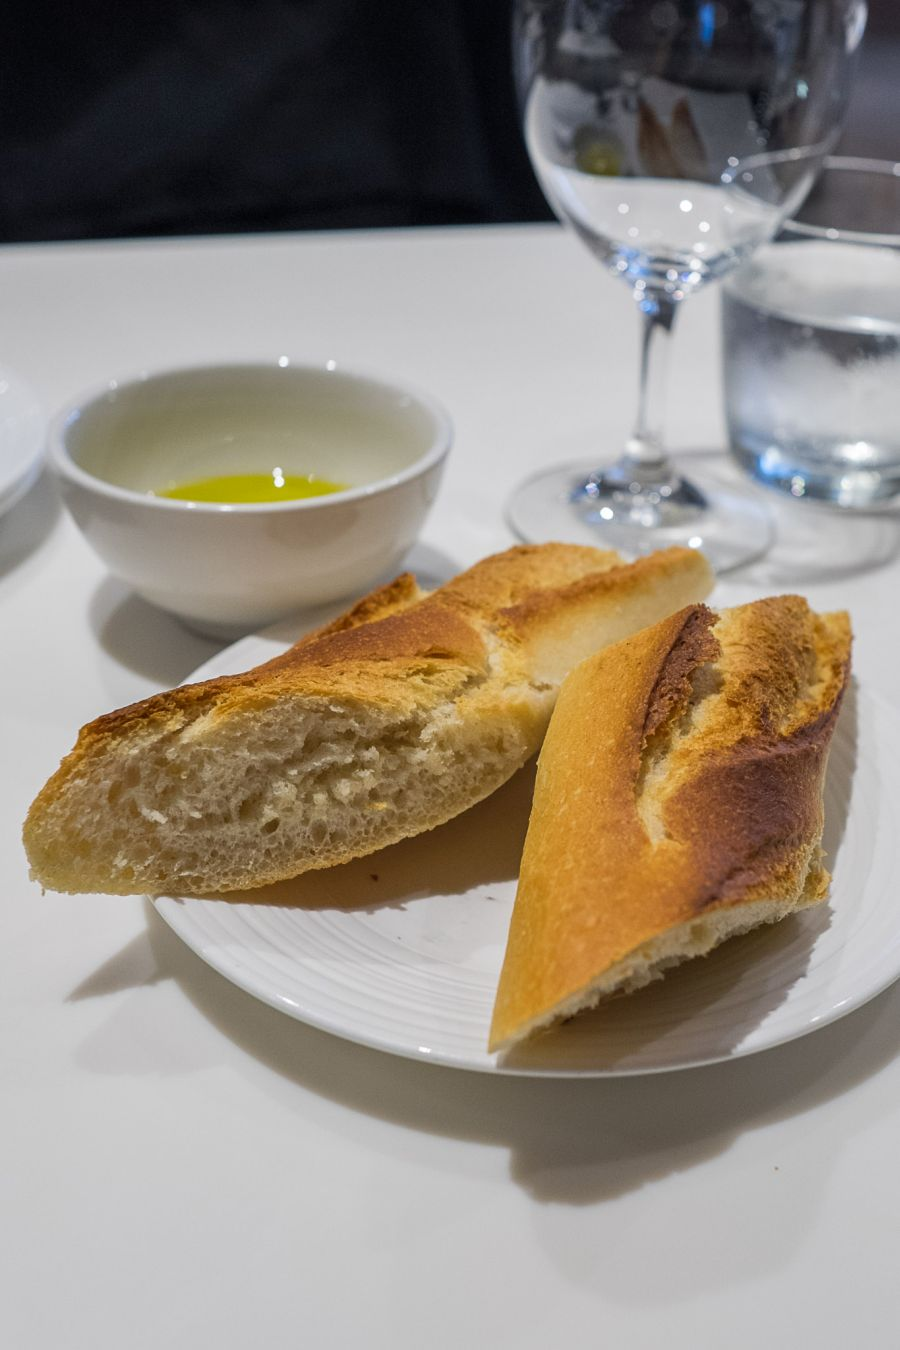 Baguette with olive oil (AU$2.50 per person)